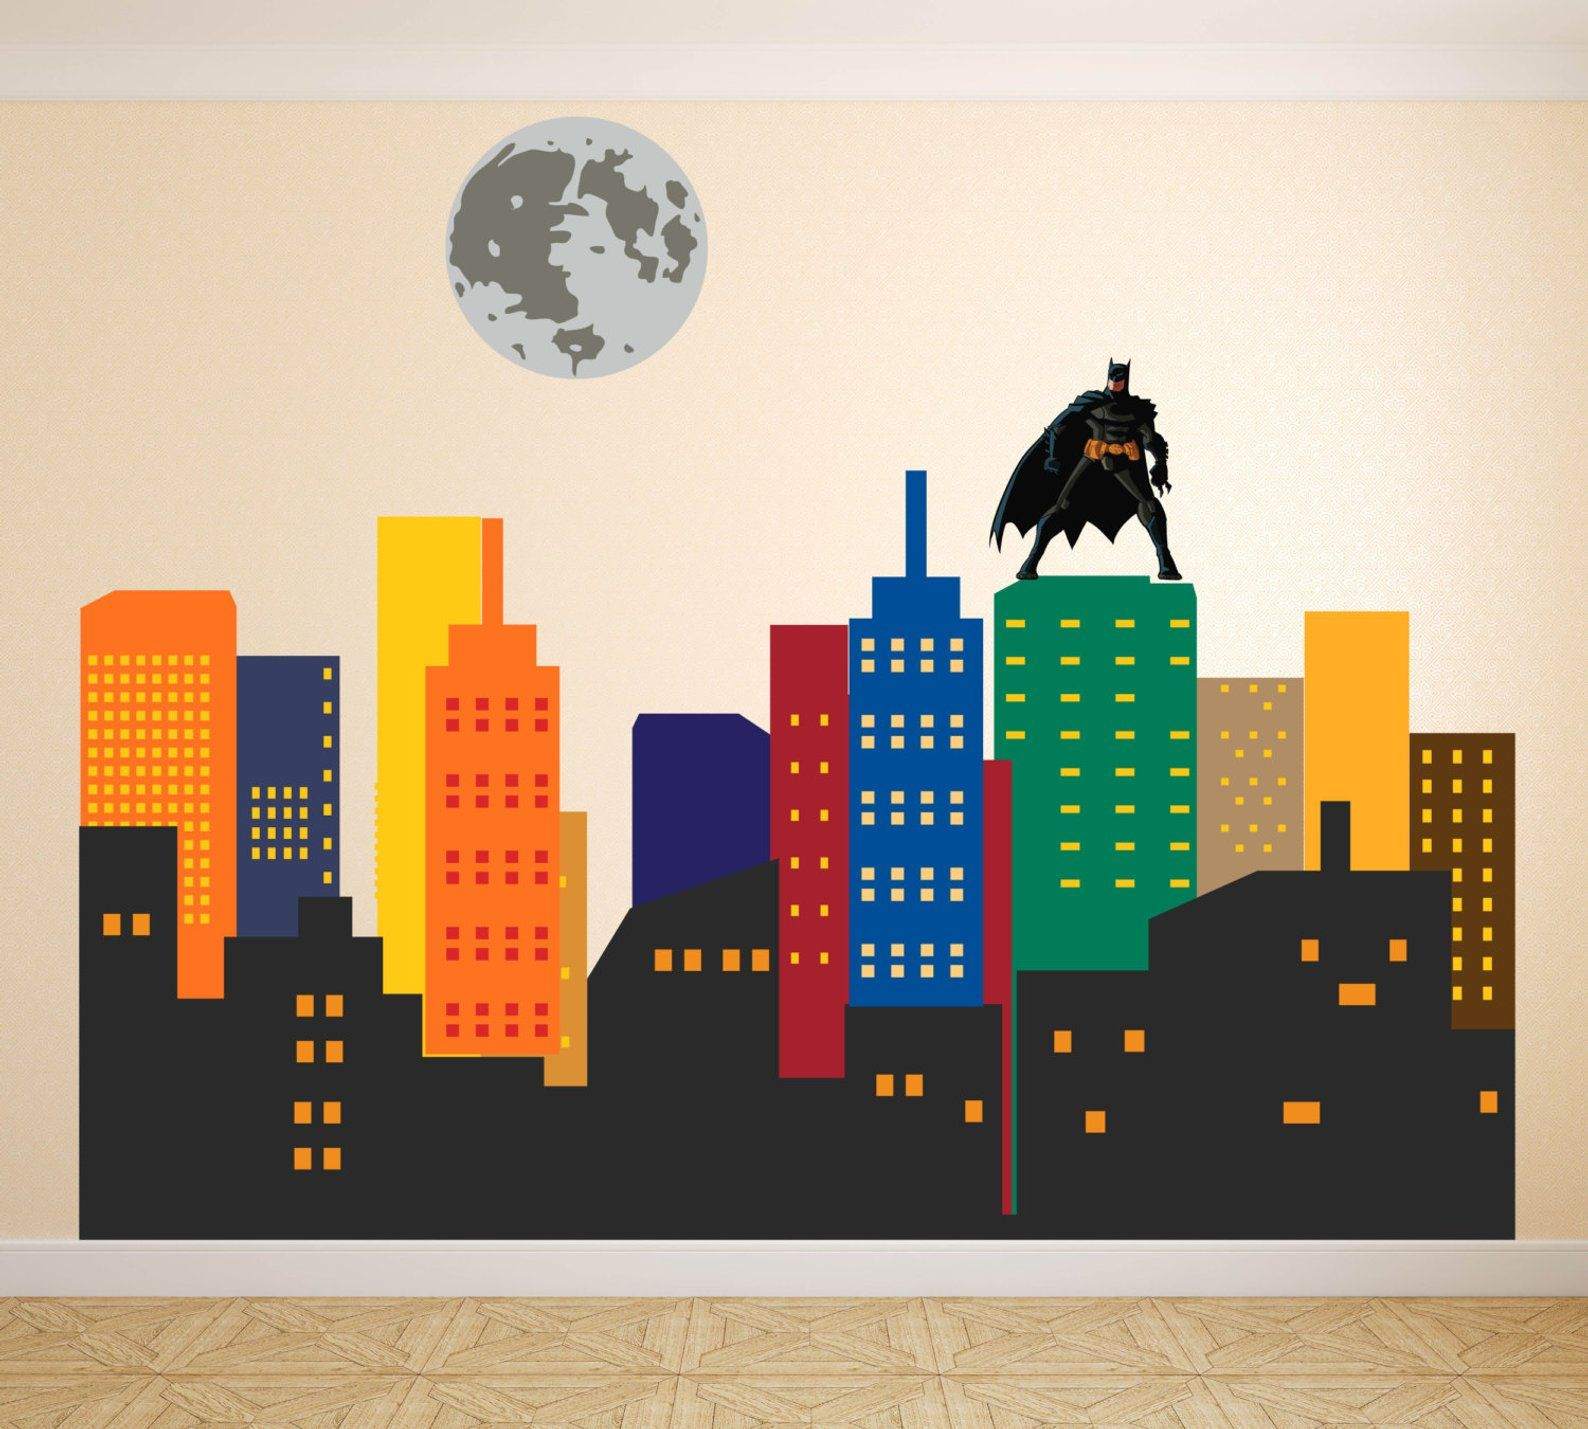 Super Hero Wall Decal City Skyline Wall Decal Gotham City Etsy Superhero Wall Decals Superhero Wall Batman Wall